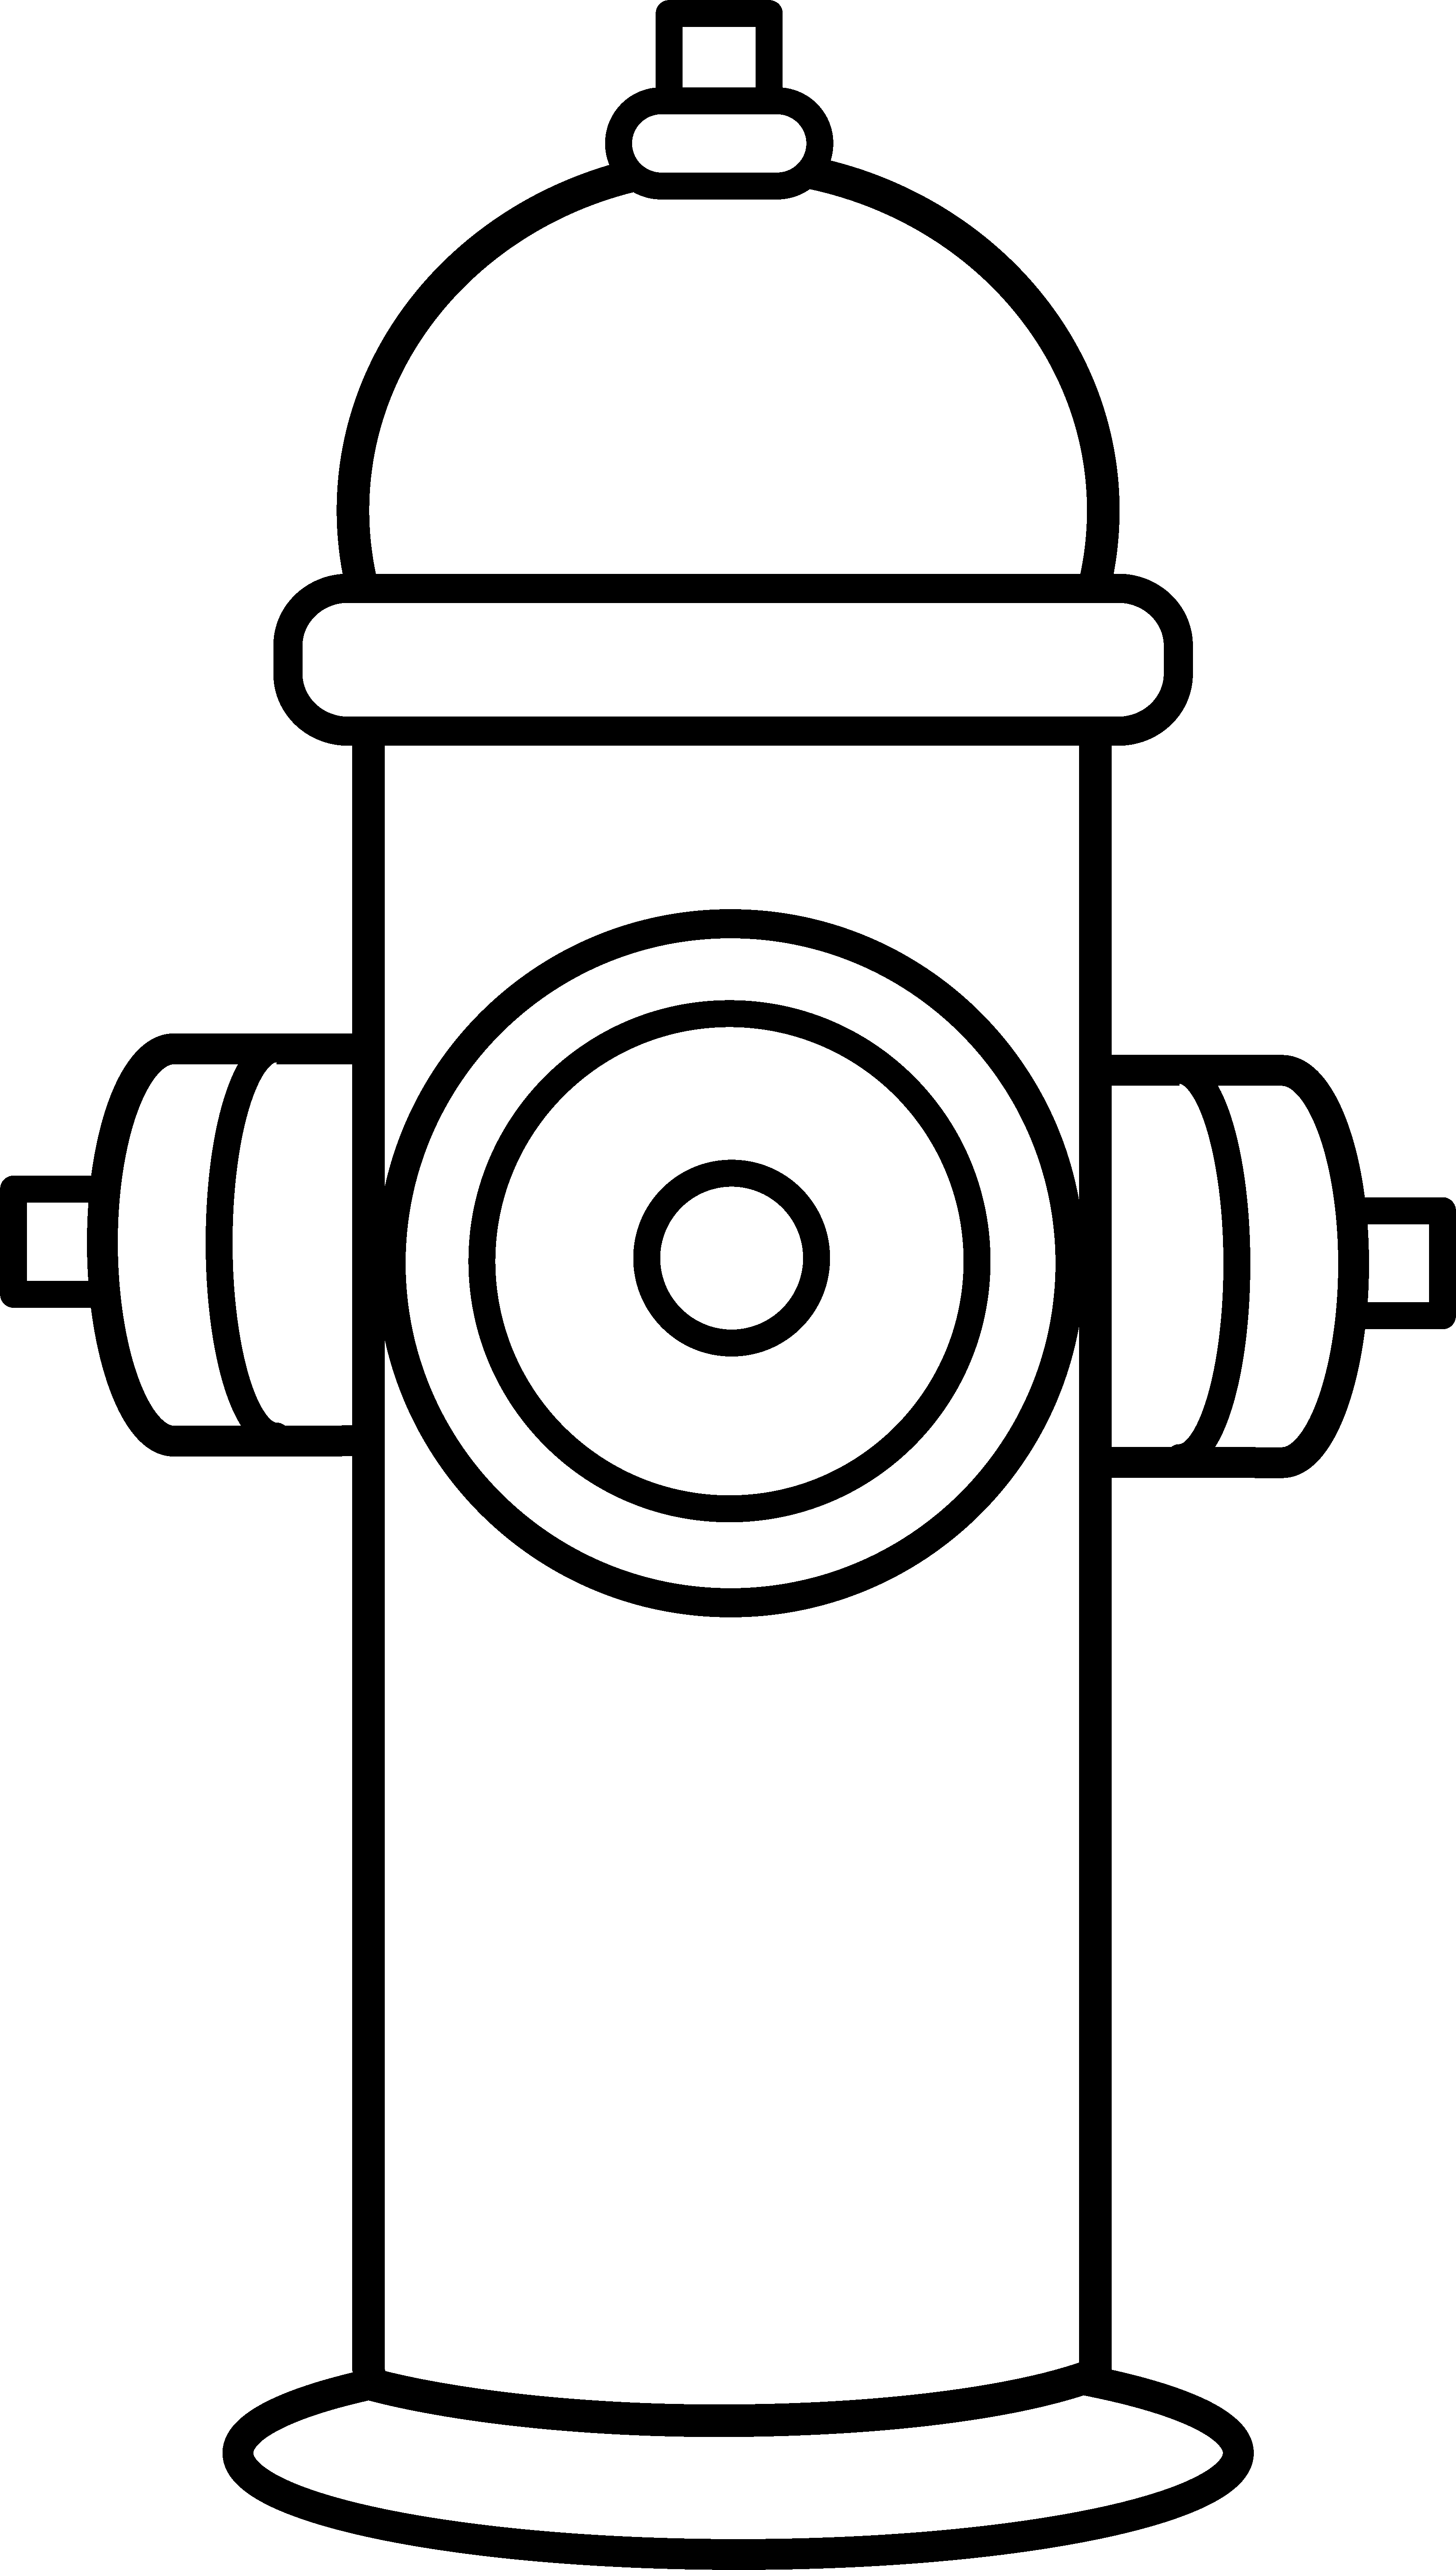 fire hydrant coloring sheet fire hydrant coloring page coloring home fire hydrant coloring sheet